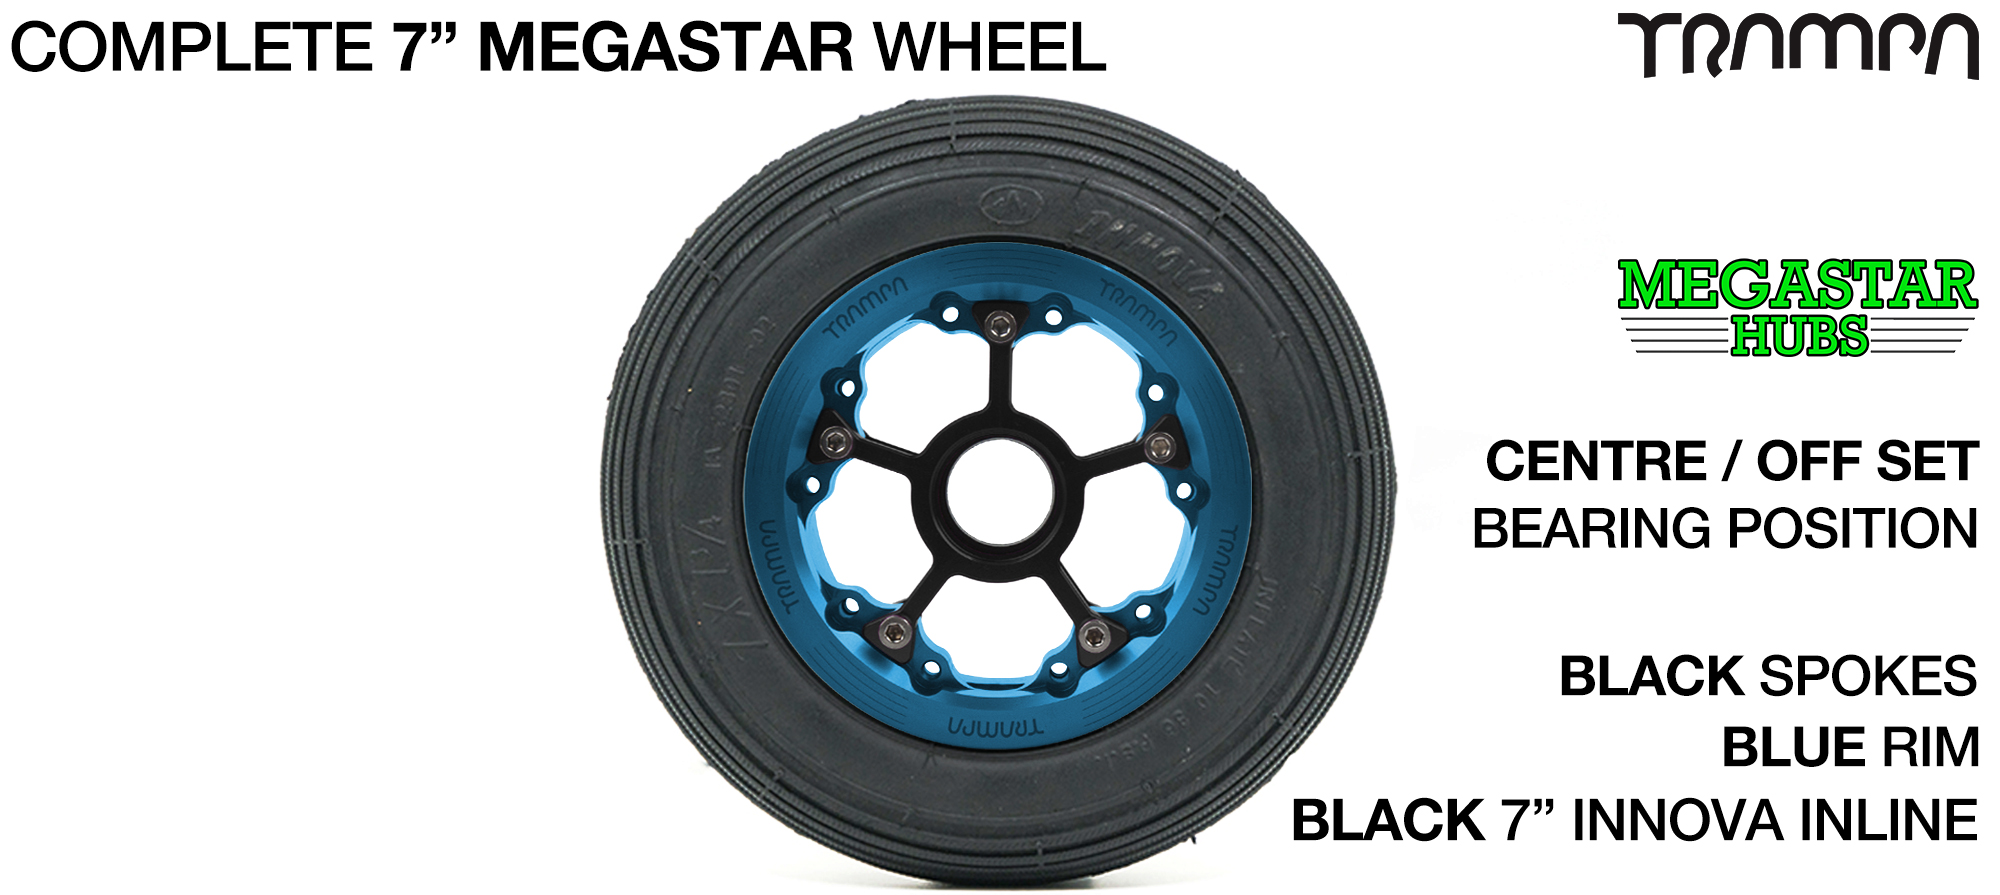 BLACK MEGASTAR Rims with BRONZE Spokes 7 Inch Tyres